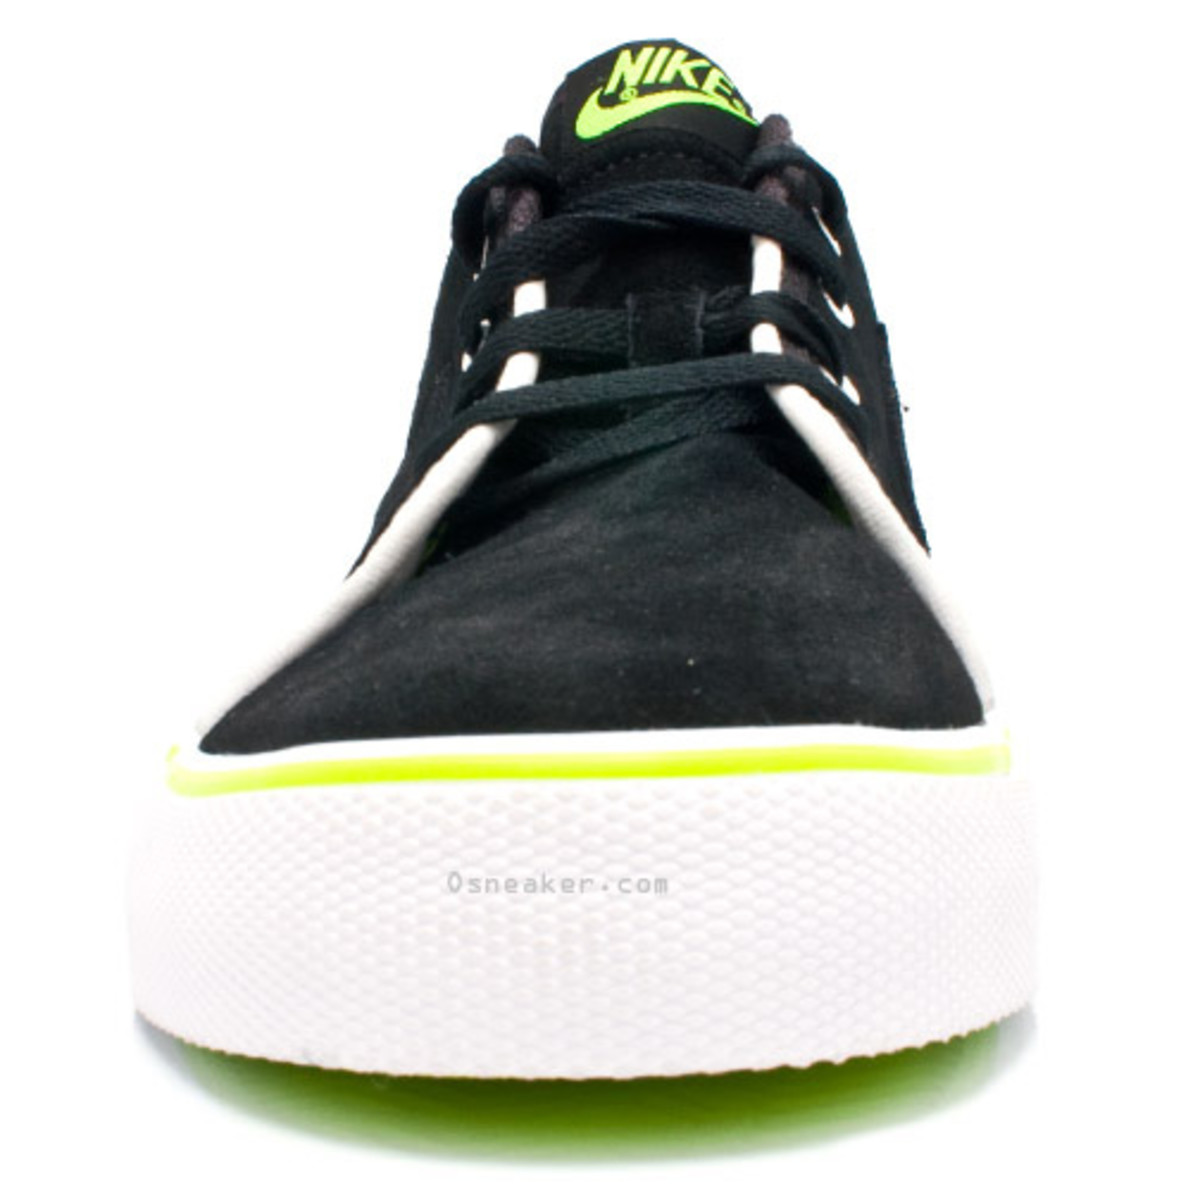 nike_air_toki_black_lime_4